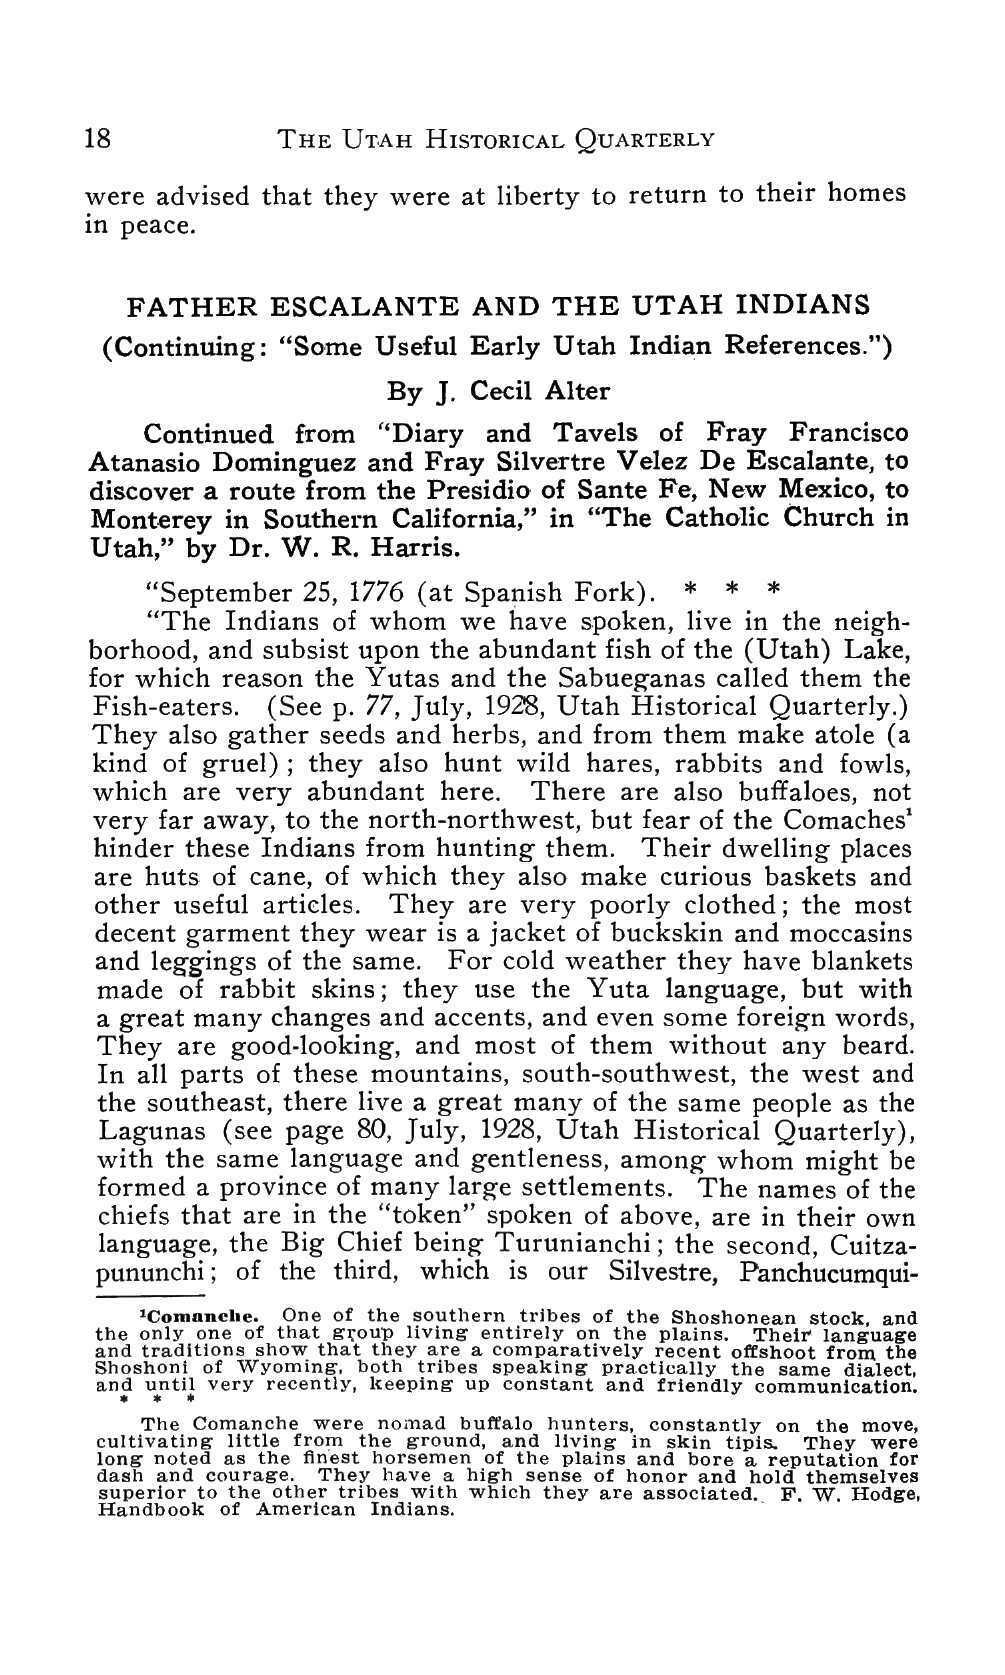 Page 18 of Father Escalante and the Utah Indians